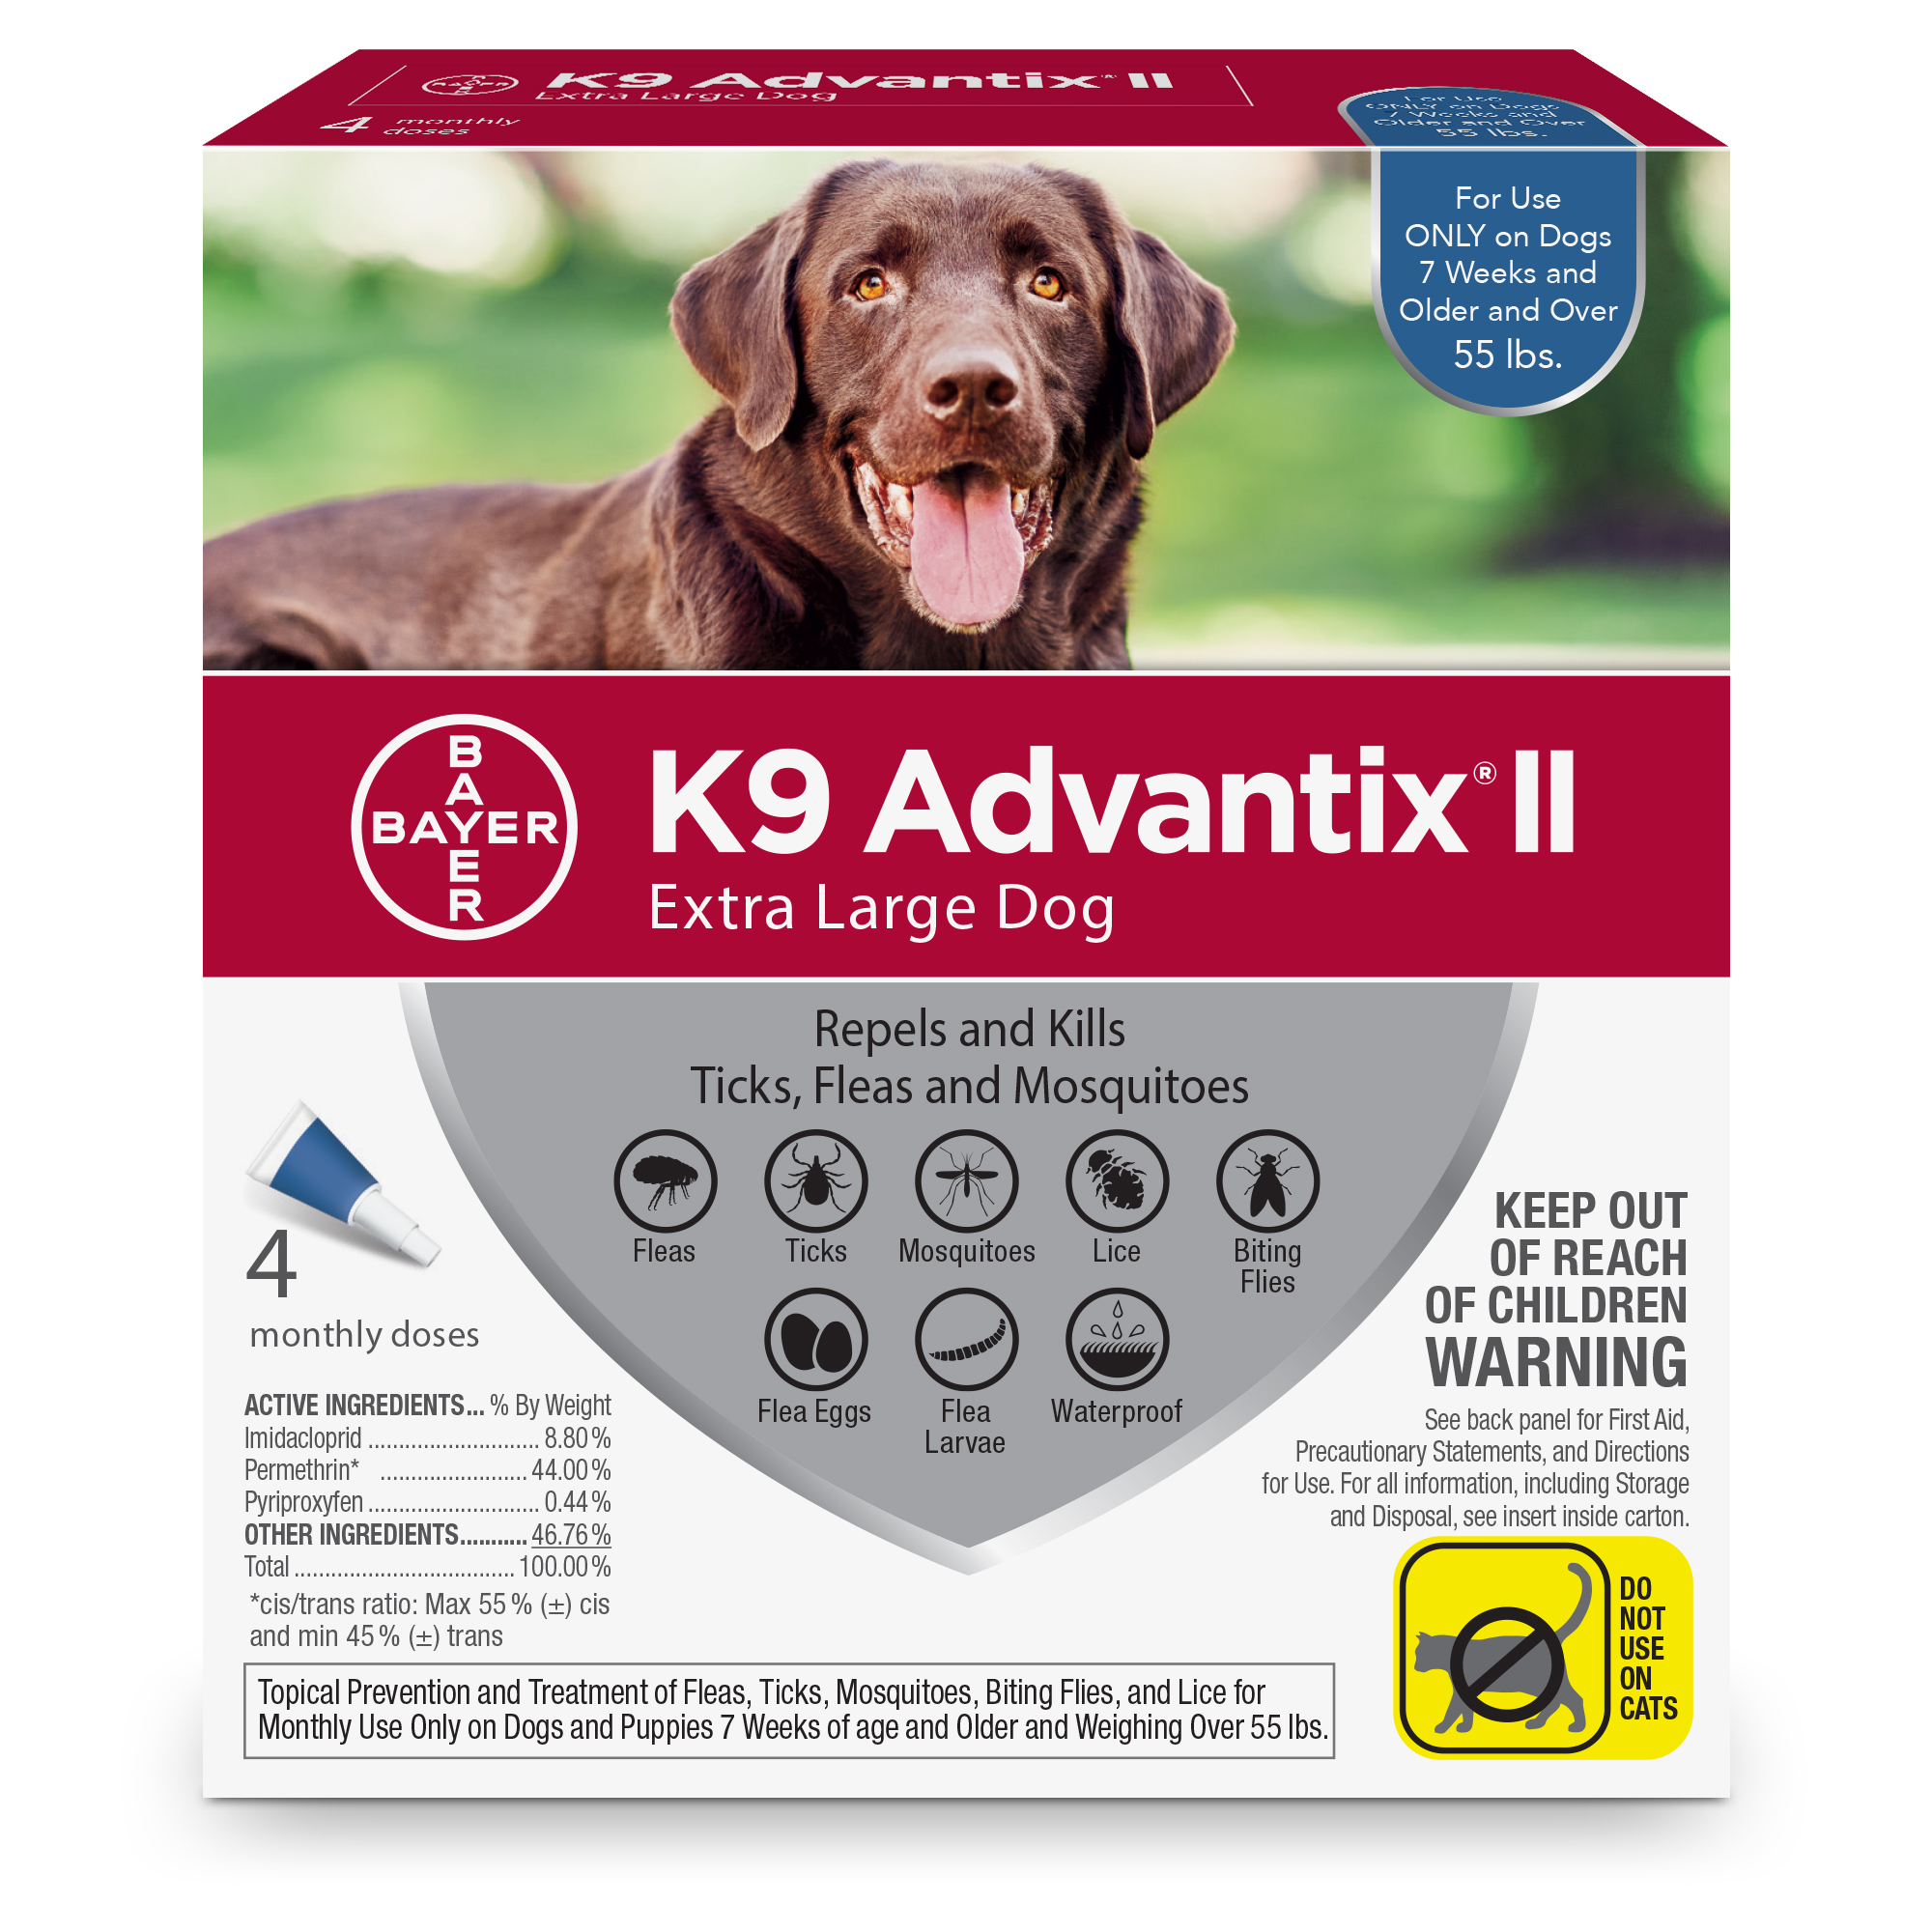 K9 Advantix II Flea and Tick Treatment for Extra Large Dogs, 4 Monthly Treatments